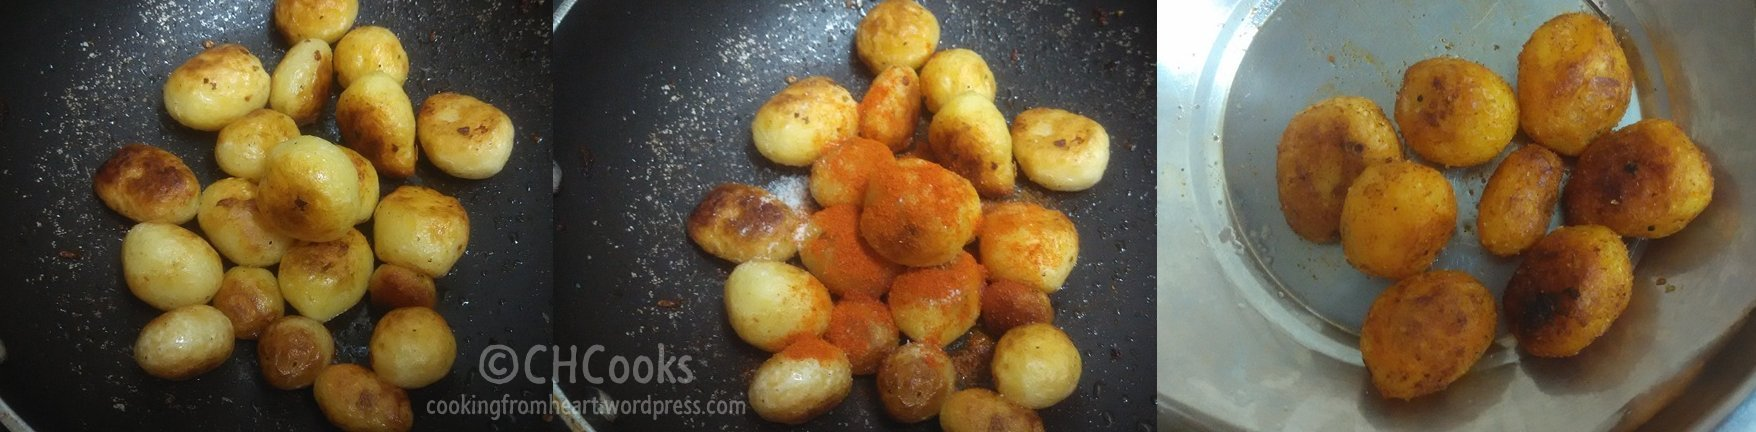 Baby Potato Roast | Stove Top Roast Baby Potatoes – Cooking From My ...